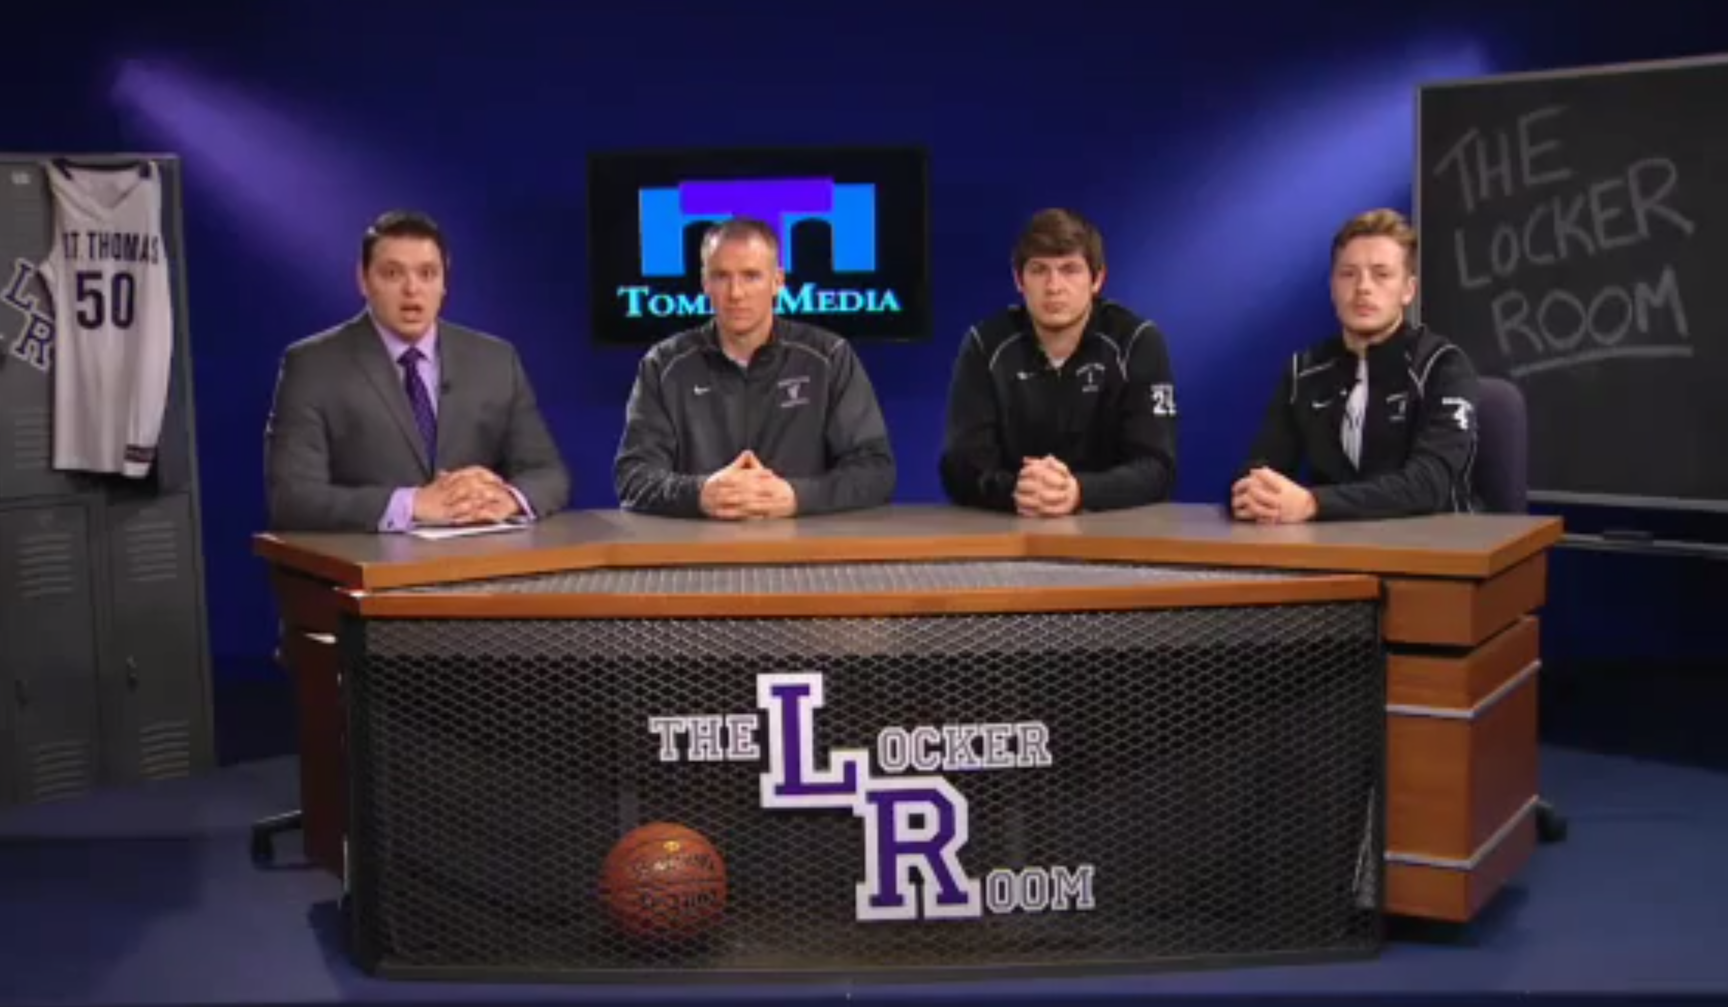 The Locker Room with John Tauer – Dec. 4, 2014